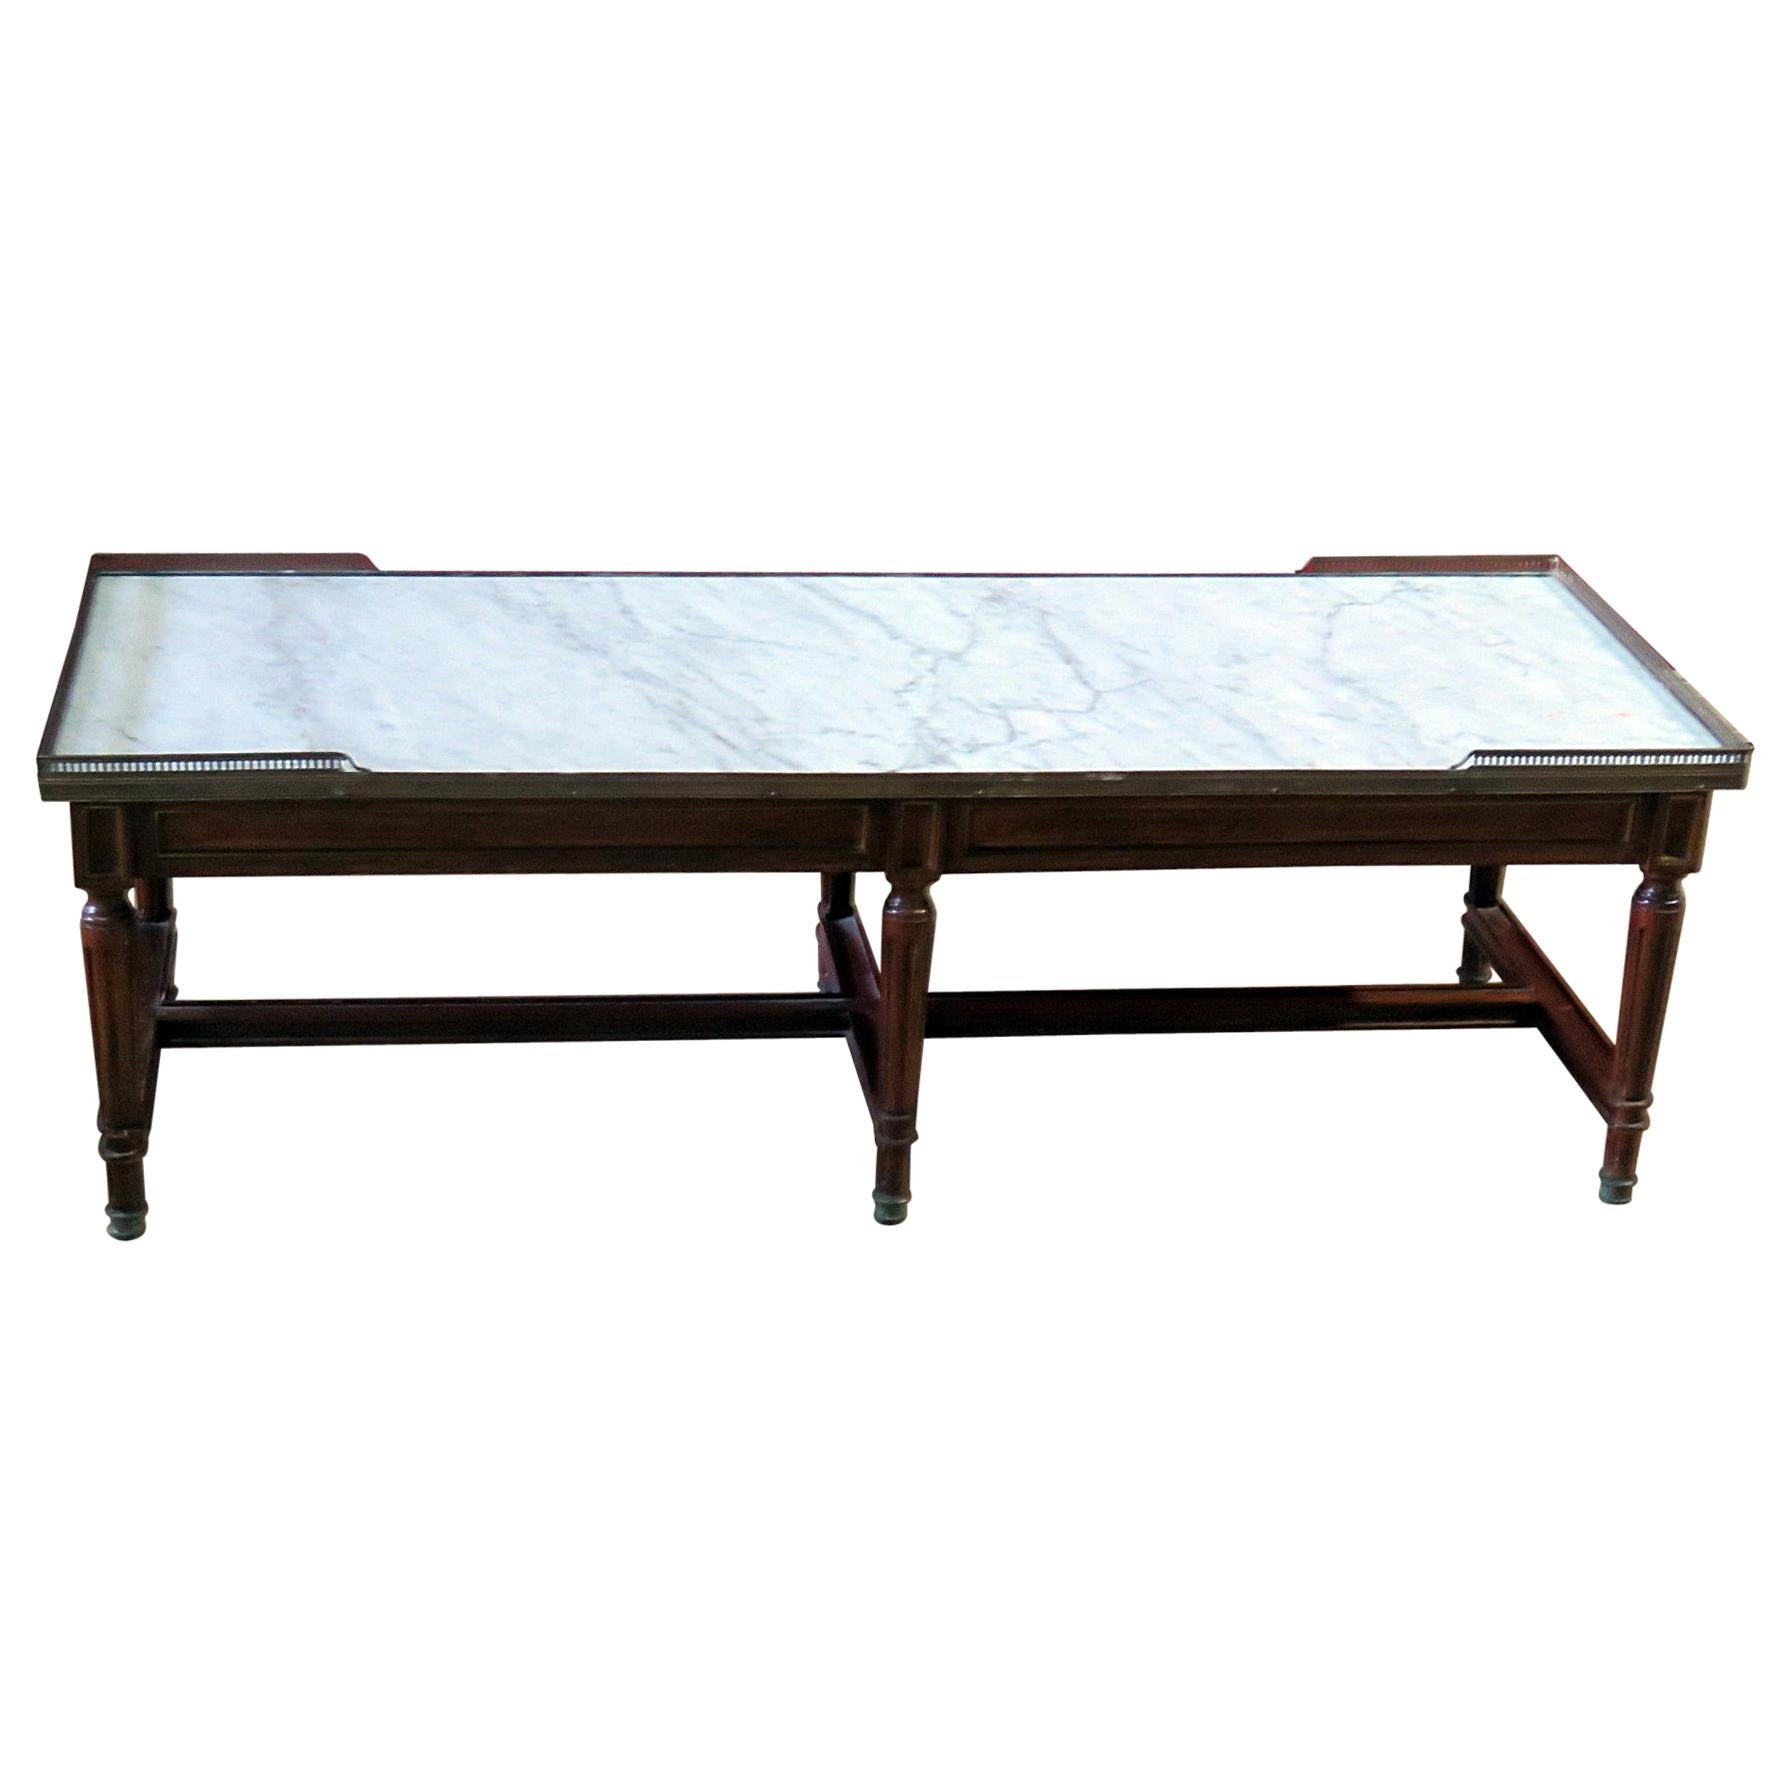 Maison Jansen Style Brass Inlaid Directoire Style Marble Top Coffee Table